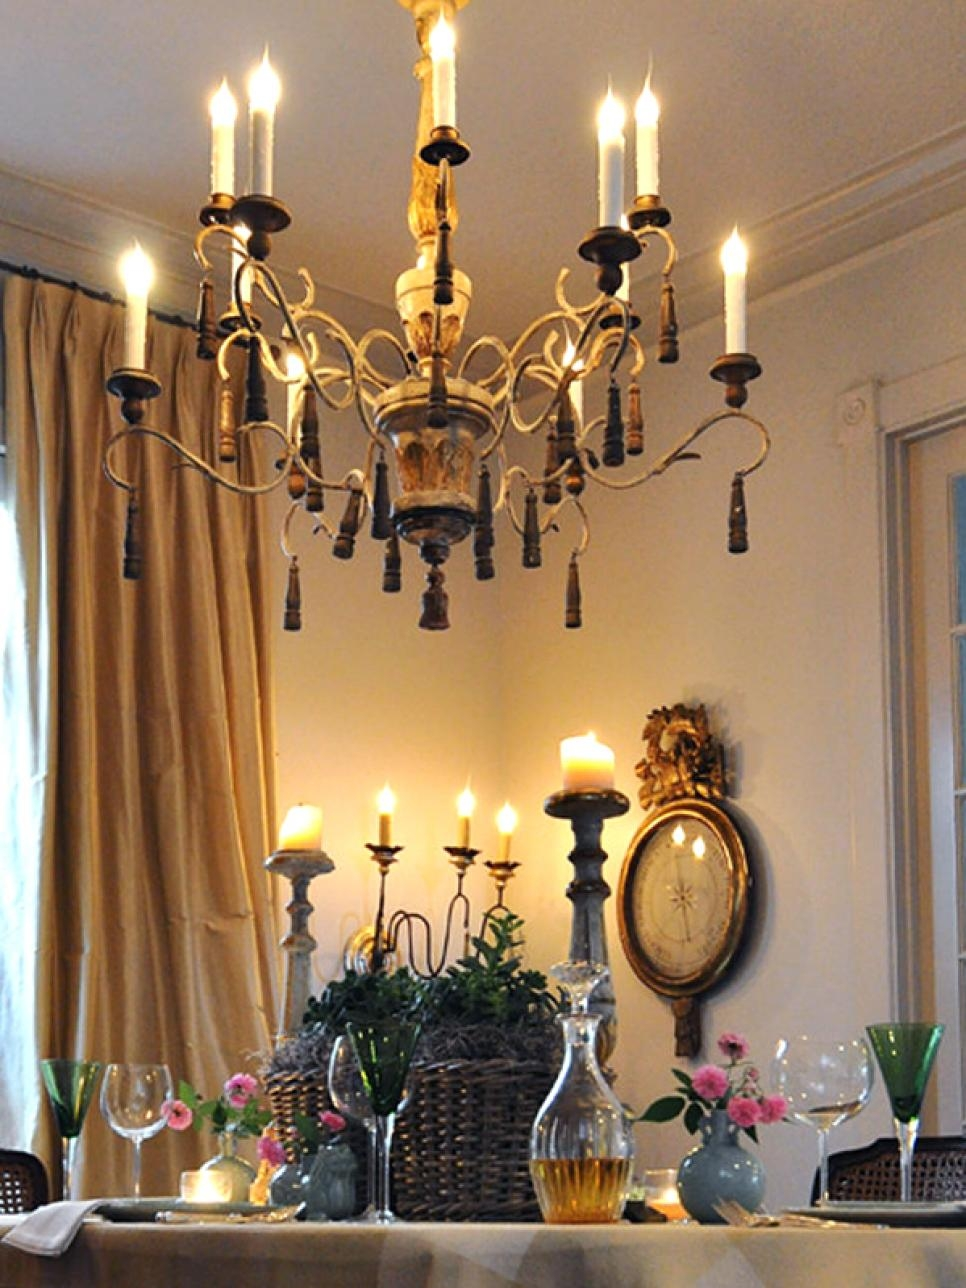 Popular Photo of Chandelier Accessories